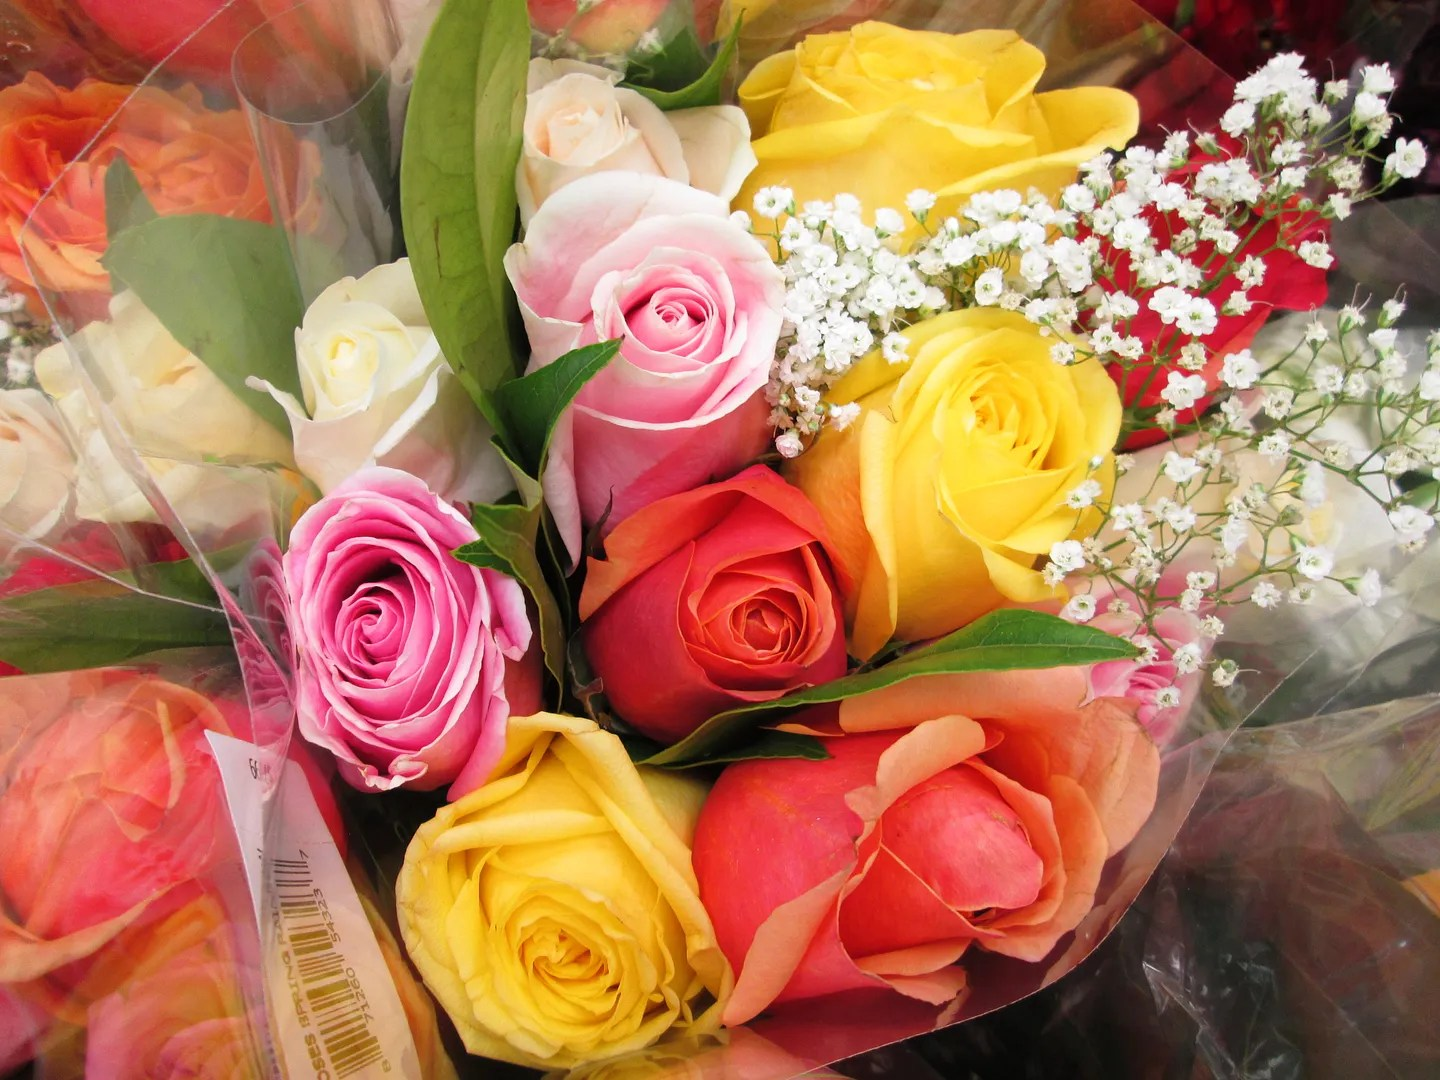 bouquet of pink, orange, and yellow roses with baby's breath